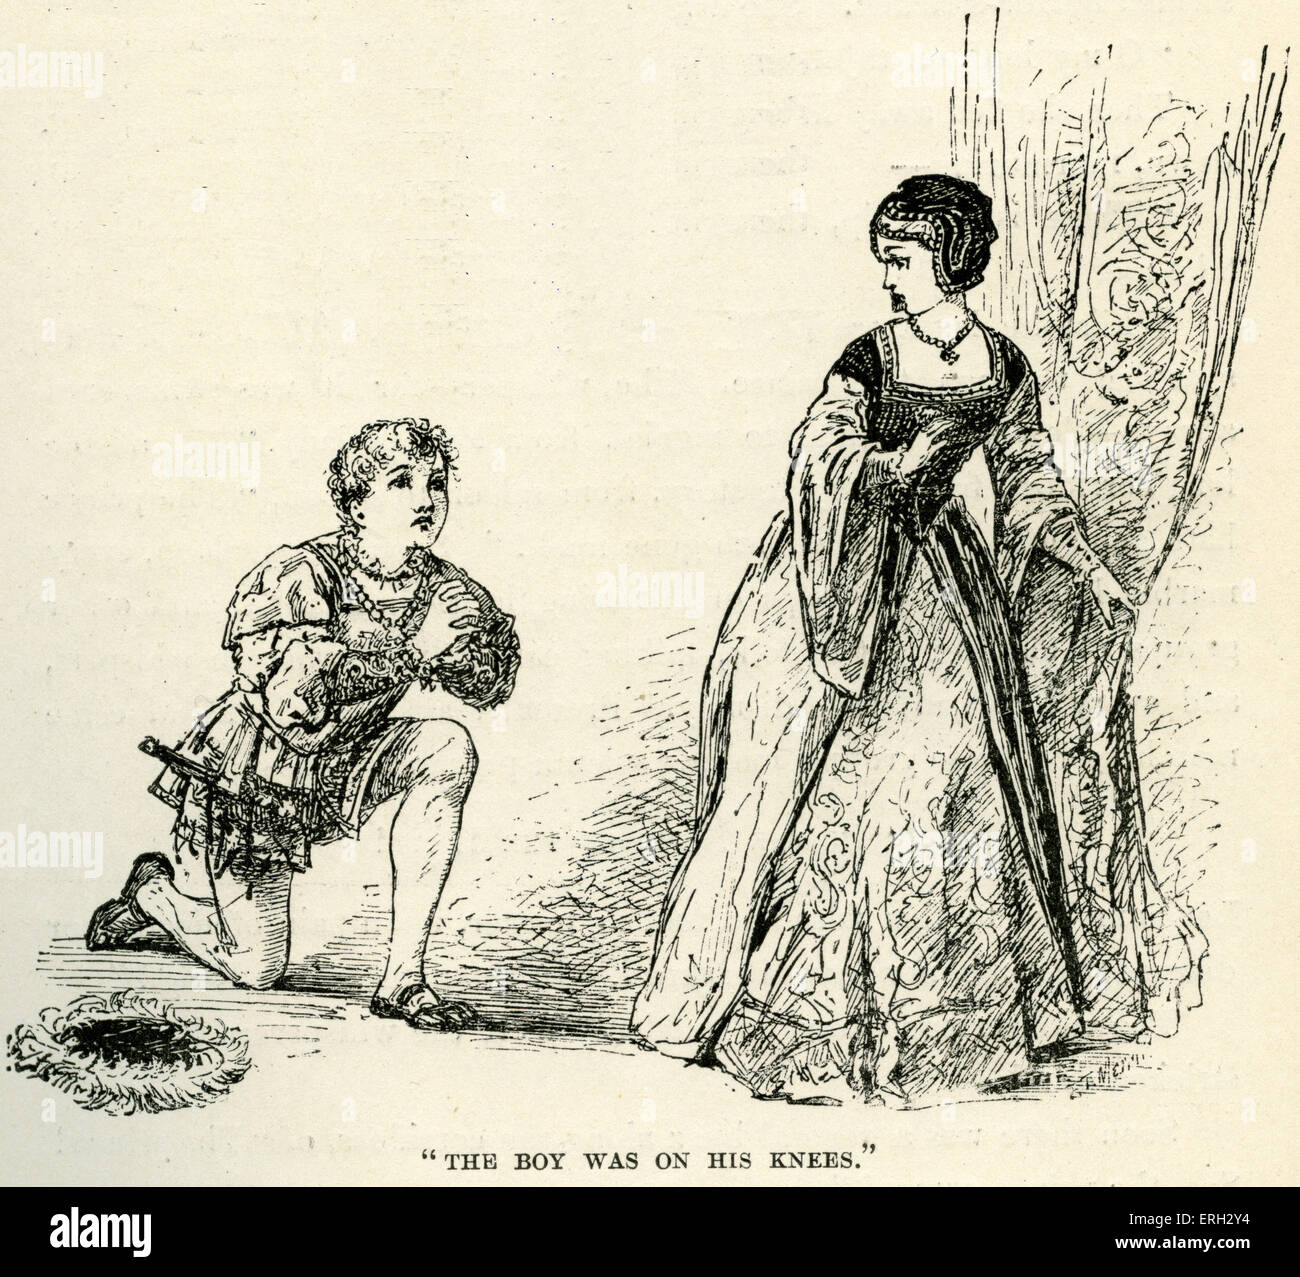 'The Prince and the Pauper' by Mark Twain.     First published in 1881. Tom drops to his knees out of respect - Stock Image